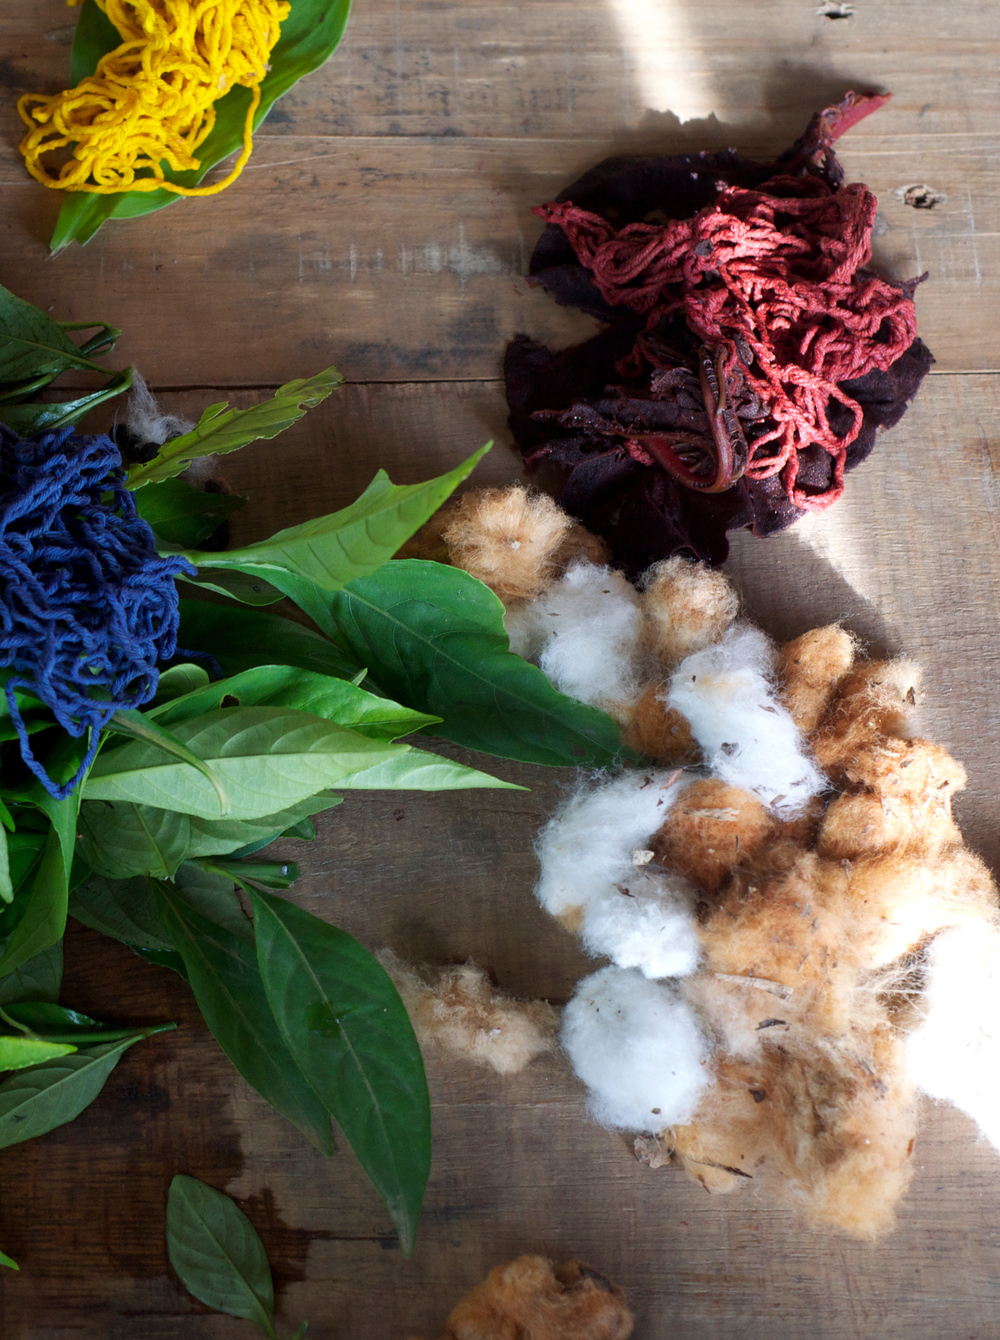 Natural Dyes, Boruca, Costa Rica